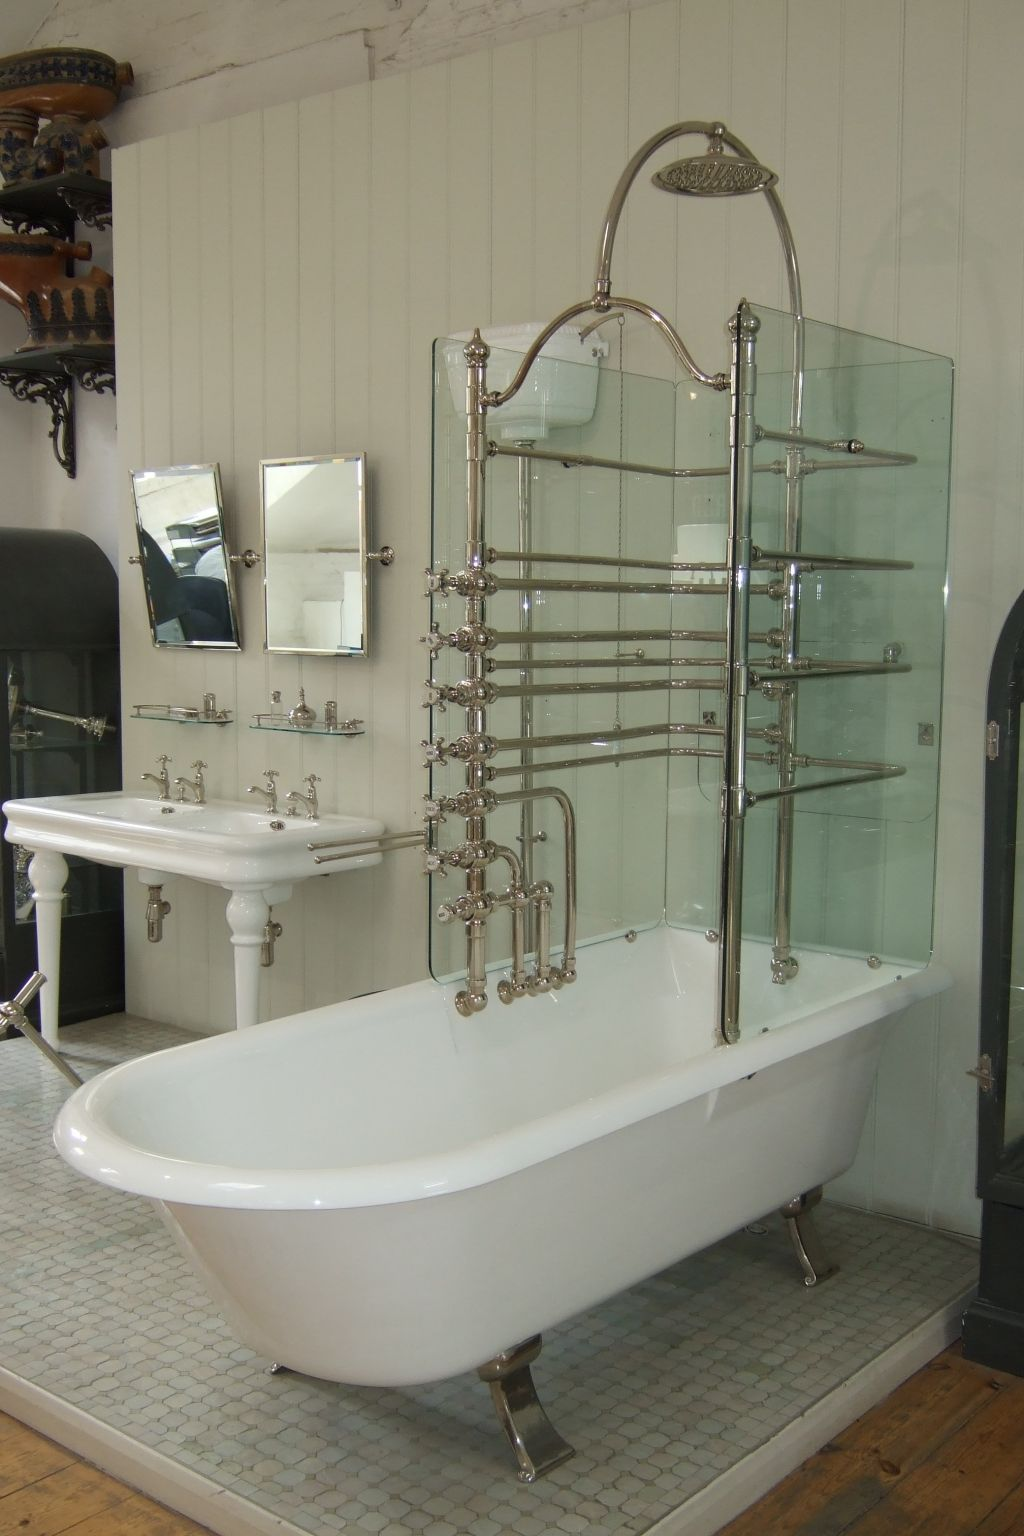 Mercury glass bathroom accessories - Canopy Bath Glass Screens The Water Monopoly